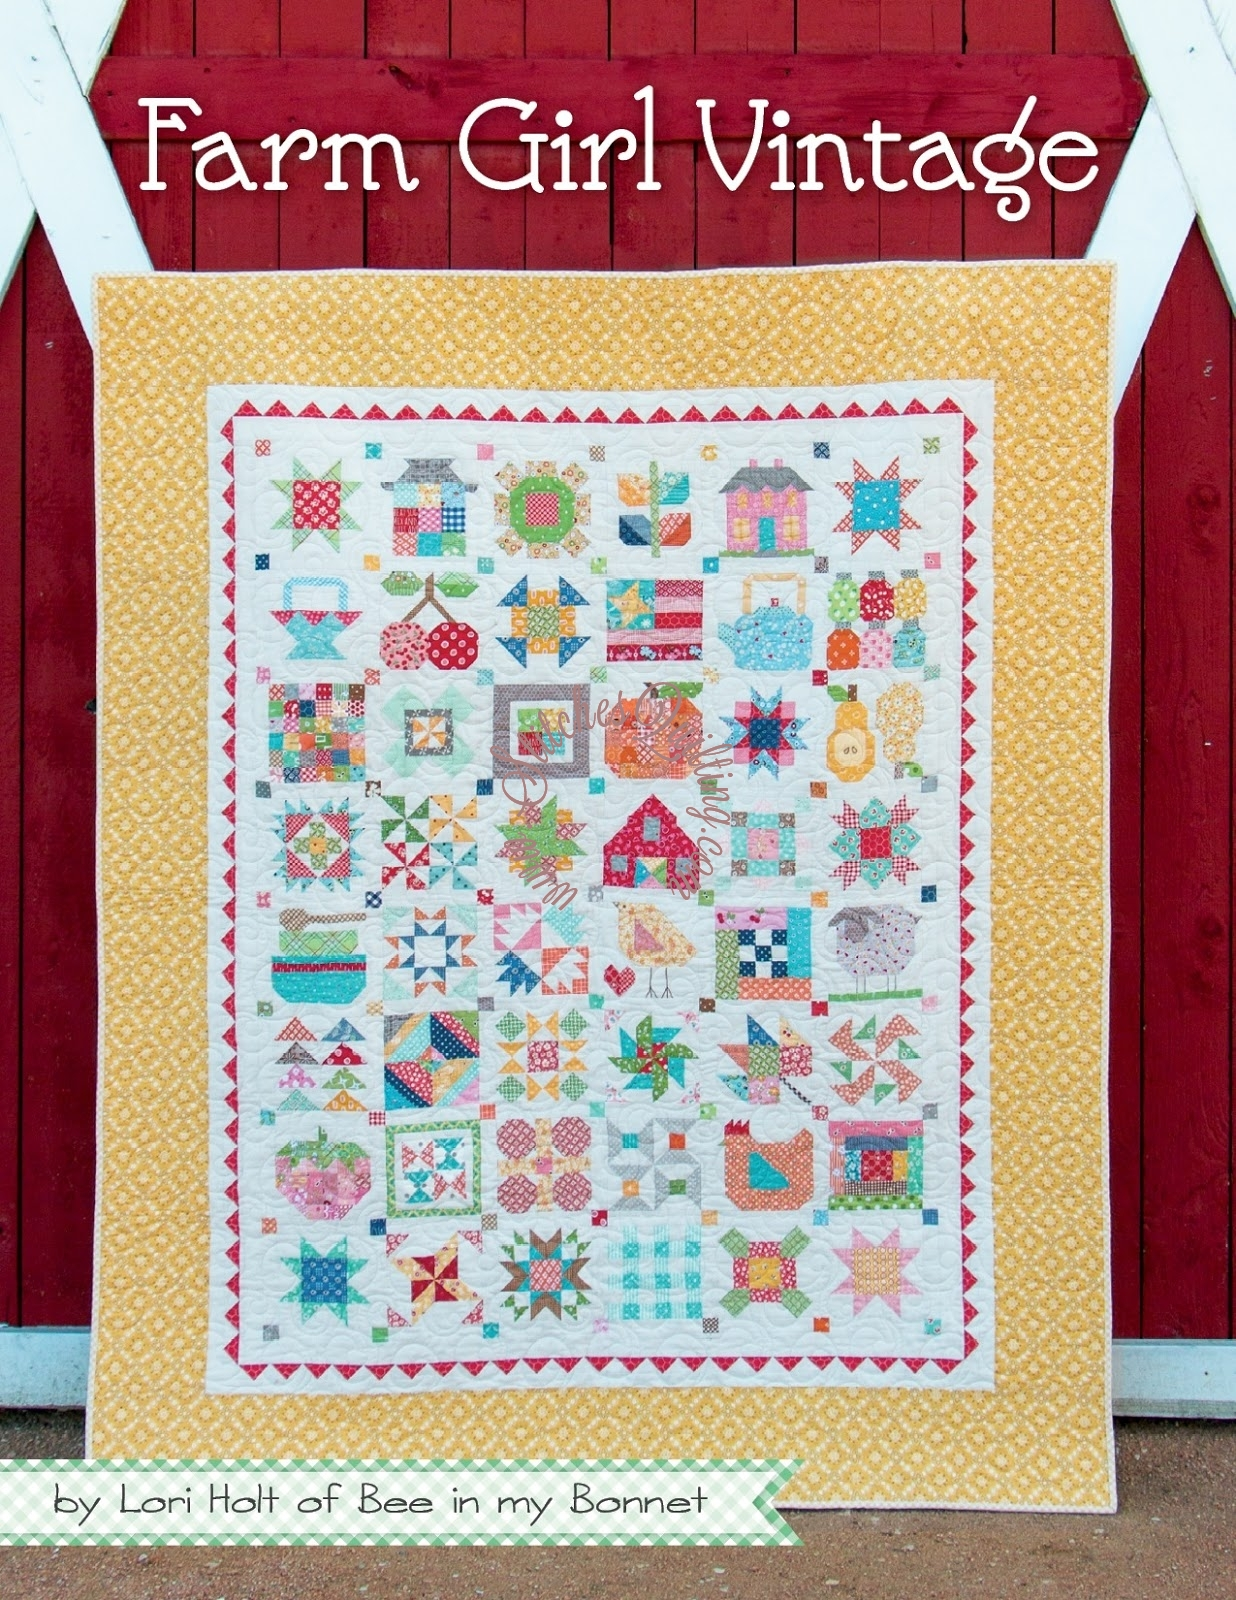 Farm Girl Vintage By Lori Holt Quilting Book Stitches